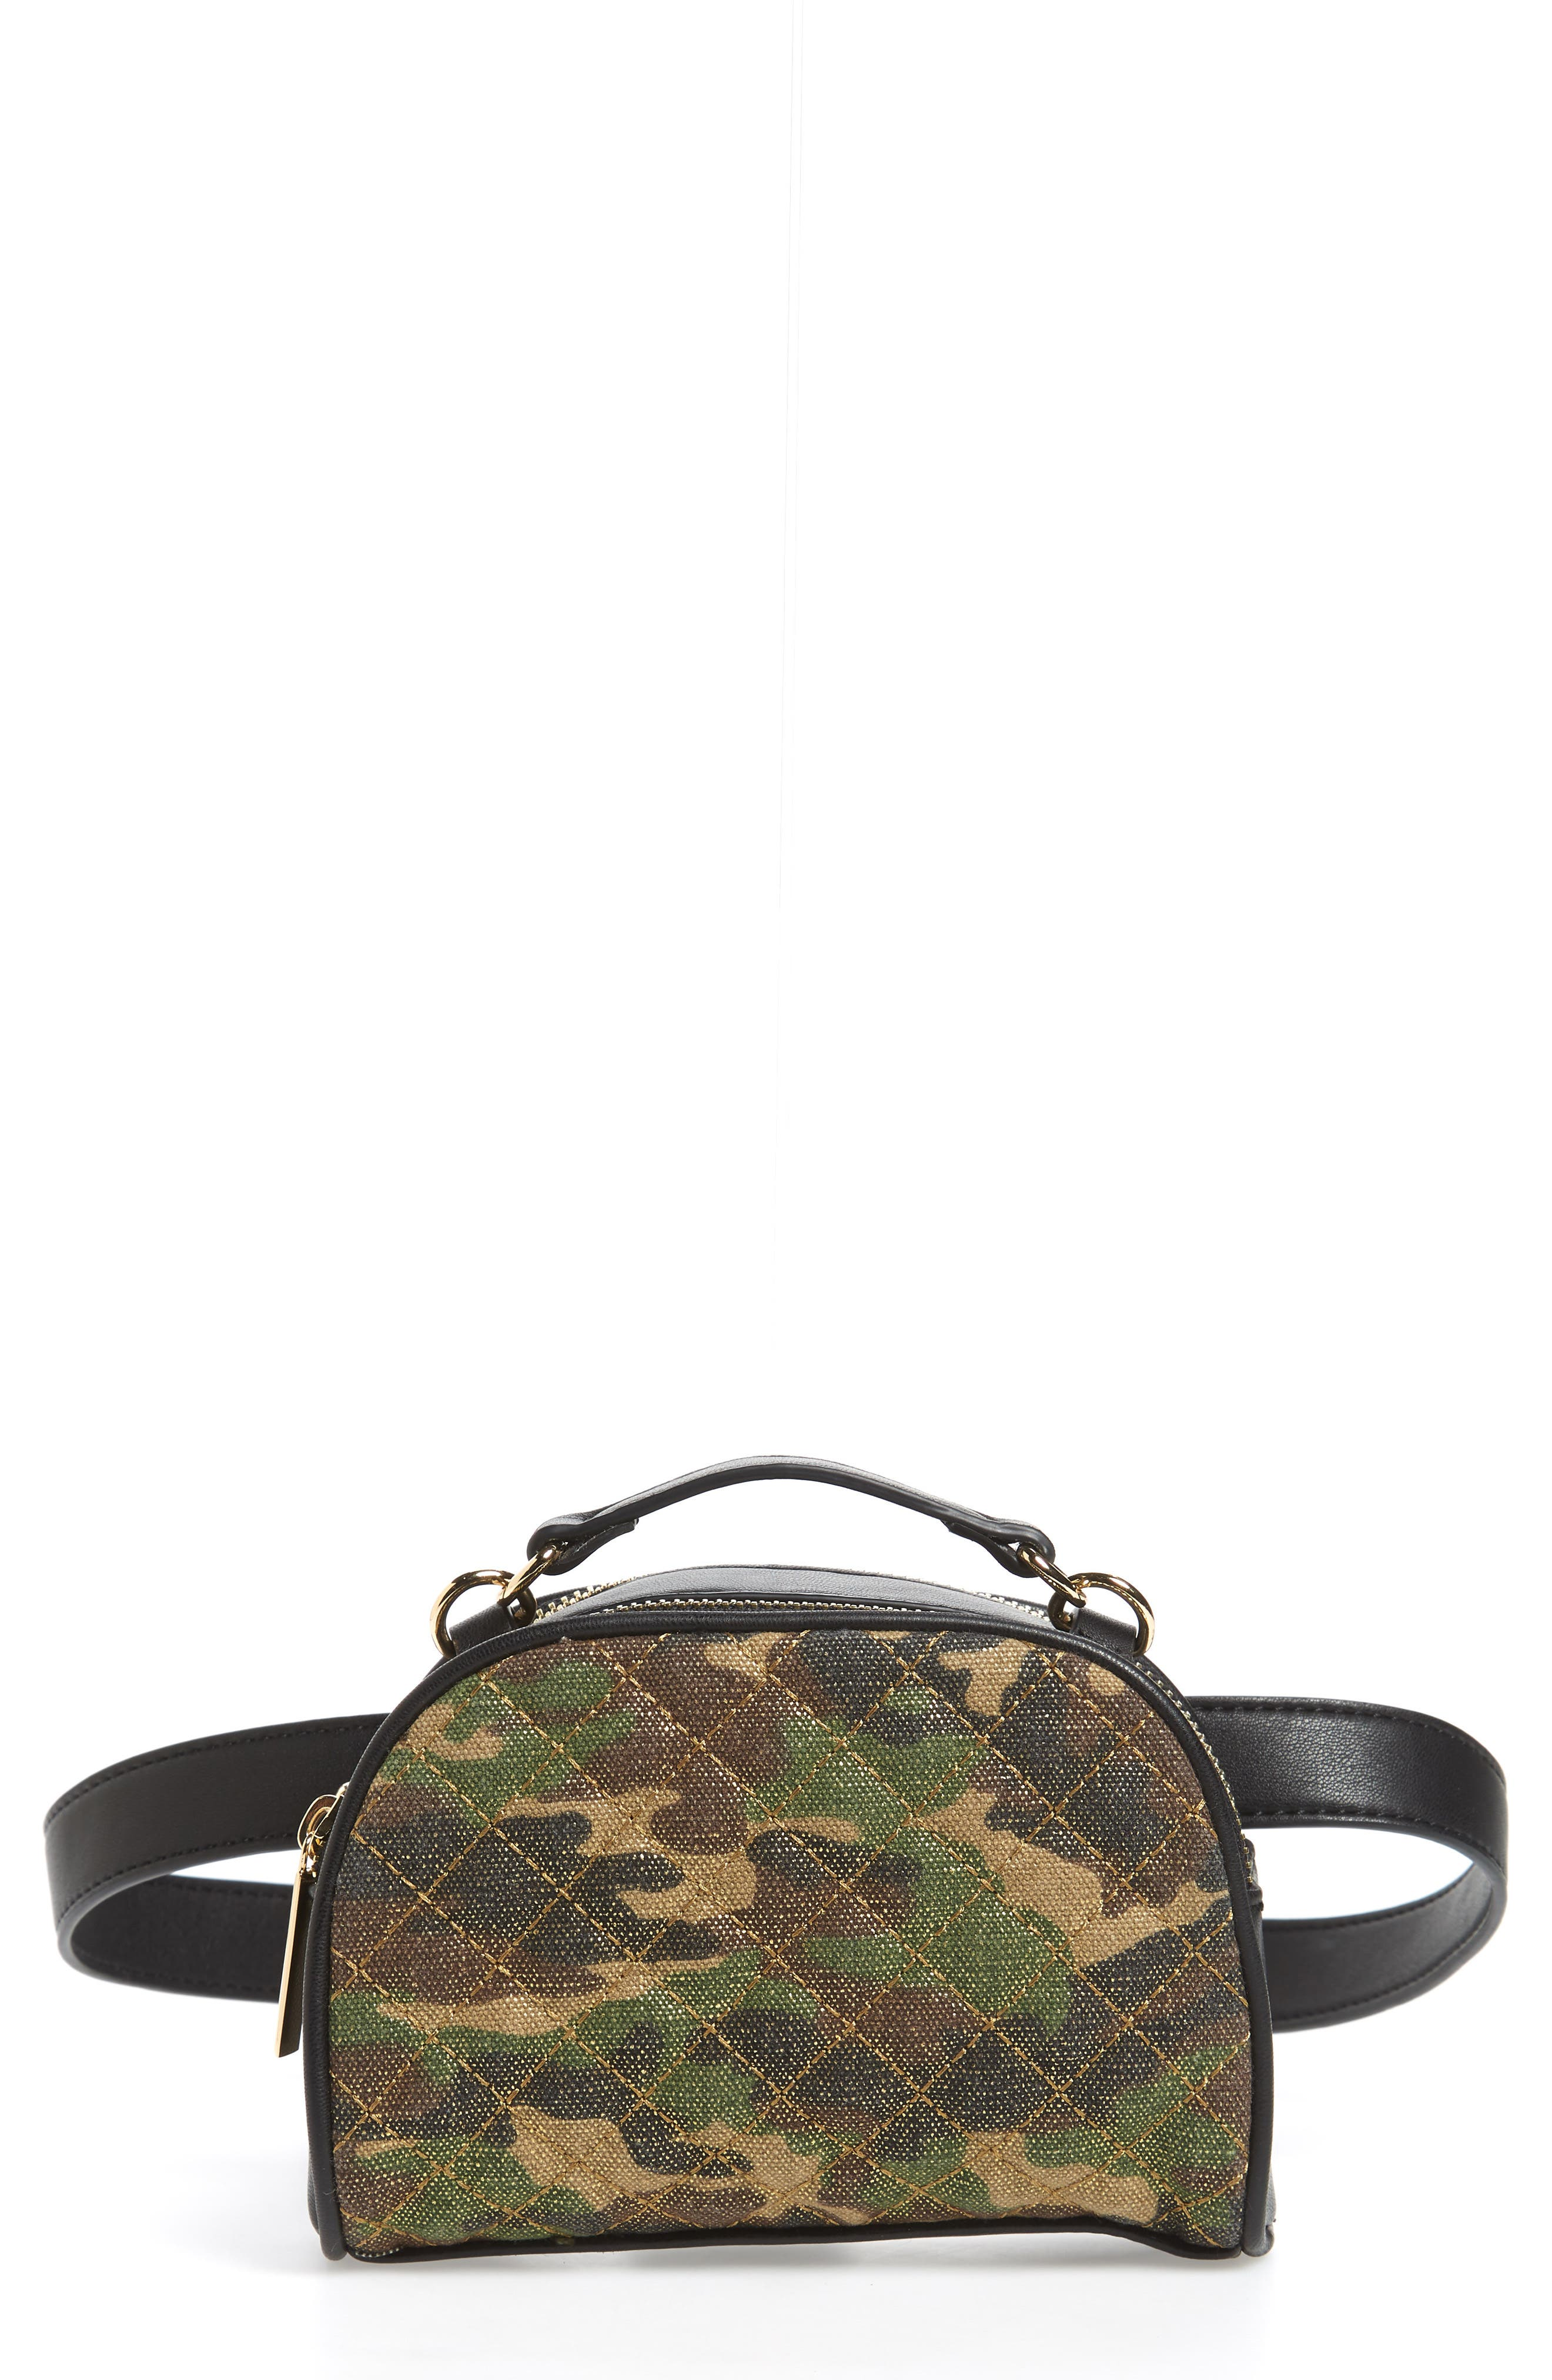 Mali + Lili Quilted Camouflage Belt Bag,                             Main thumbnail 1, color,                             340